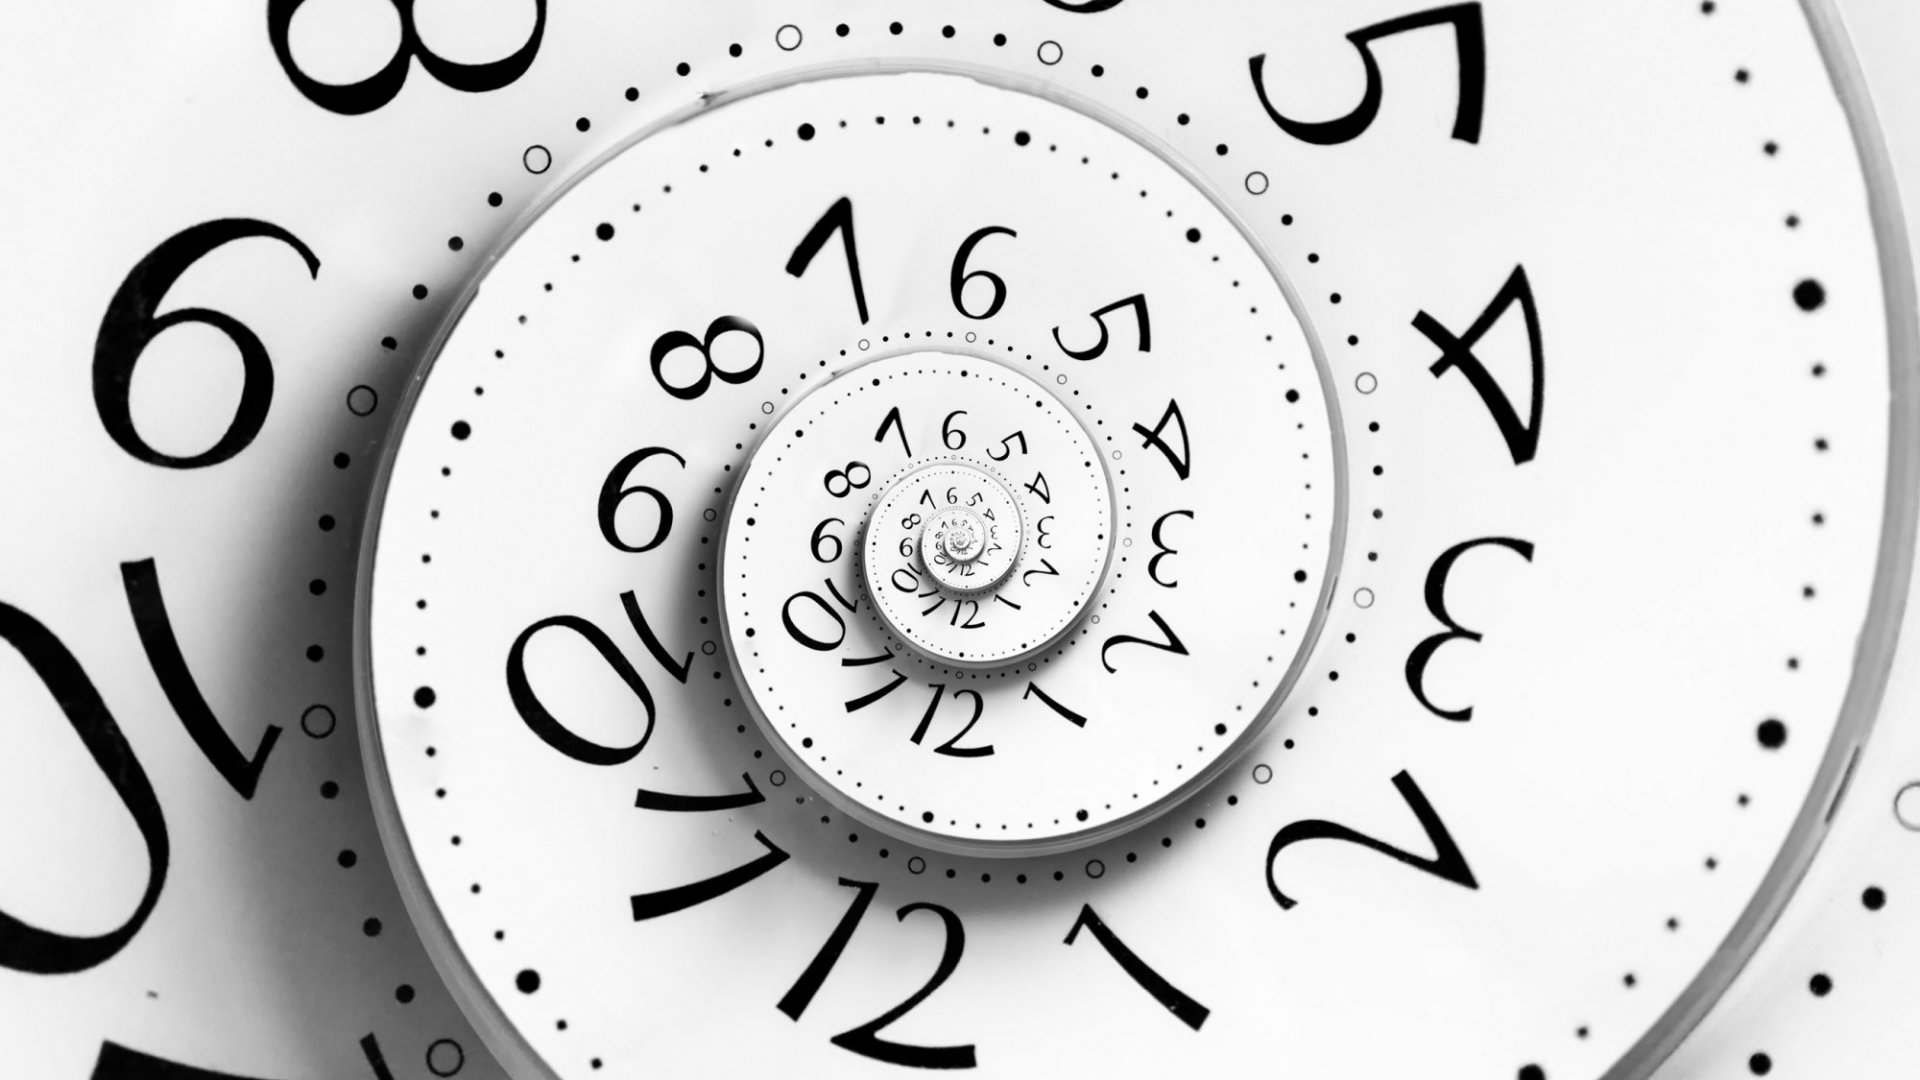 Why Your Boss Makes You Punch a Time Clock